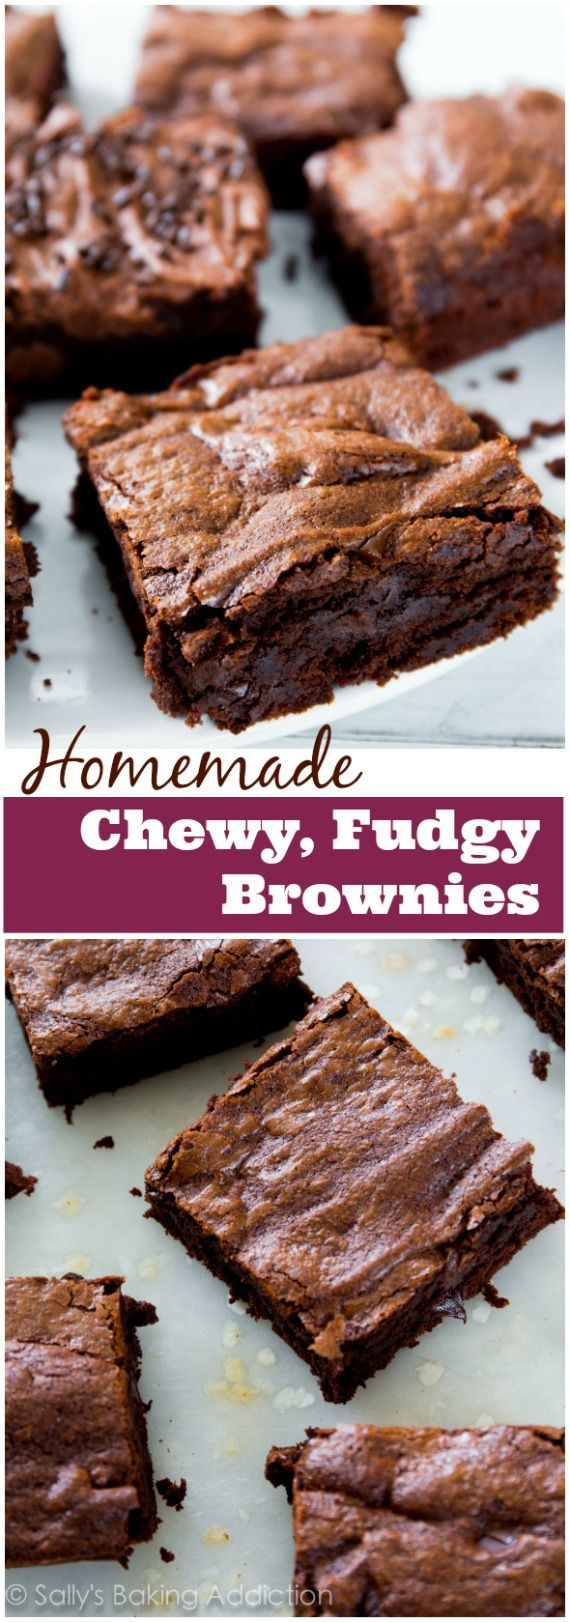 Thick, fudgy, chewy homemade brownies